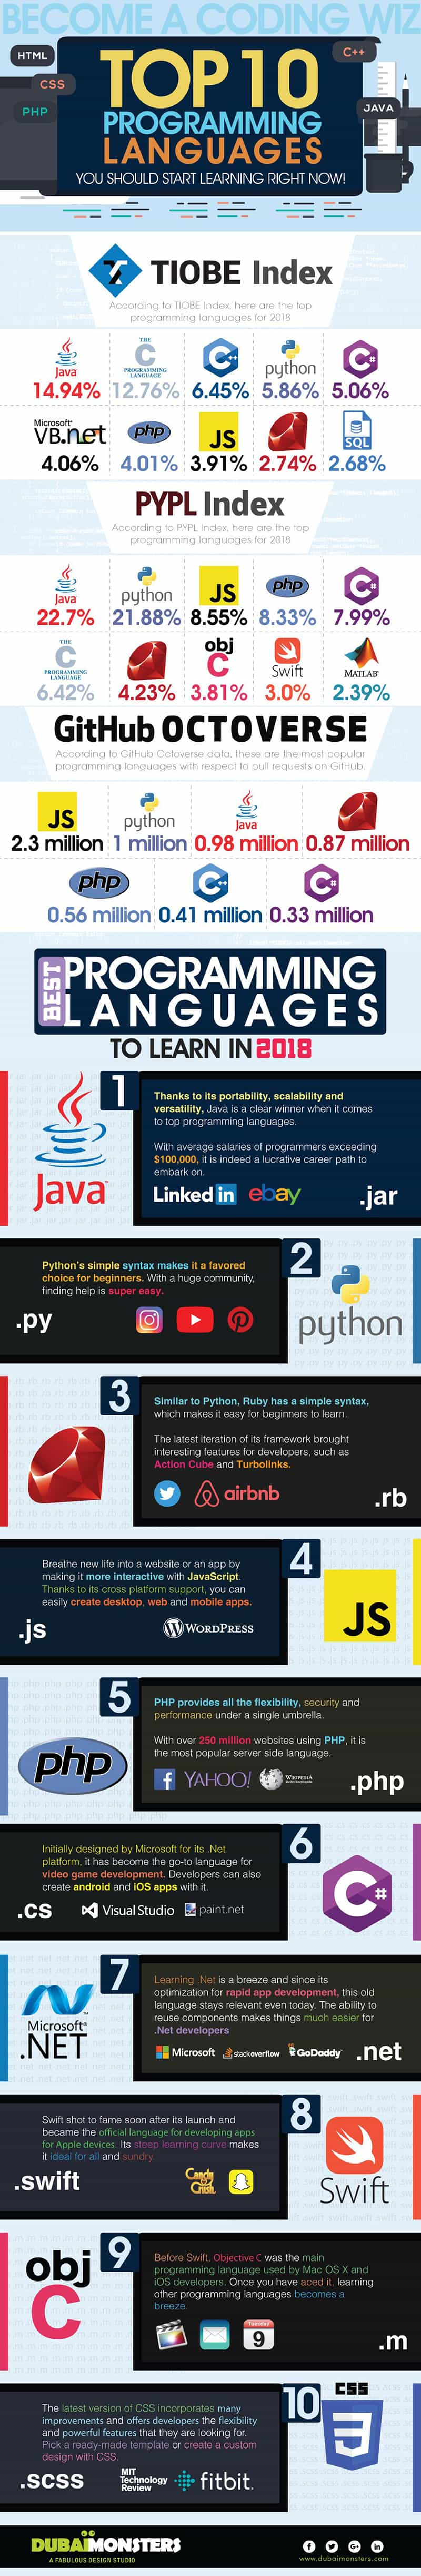 Become a Coding Wiz: Top 10 Programming Languages You Should Start Learning Right Now!